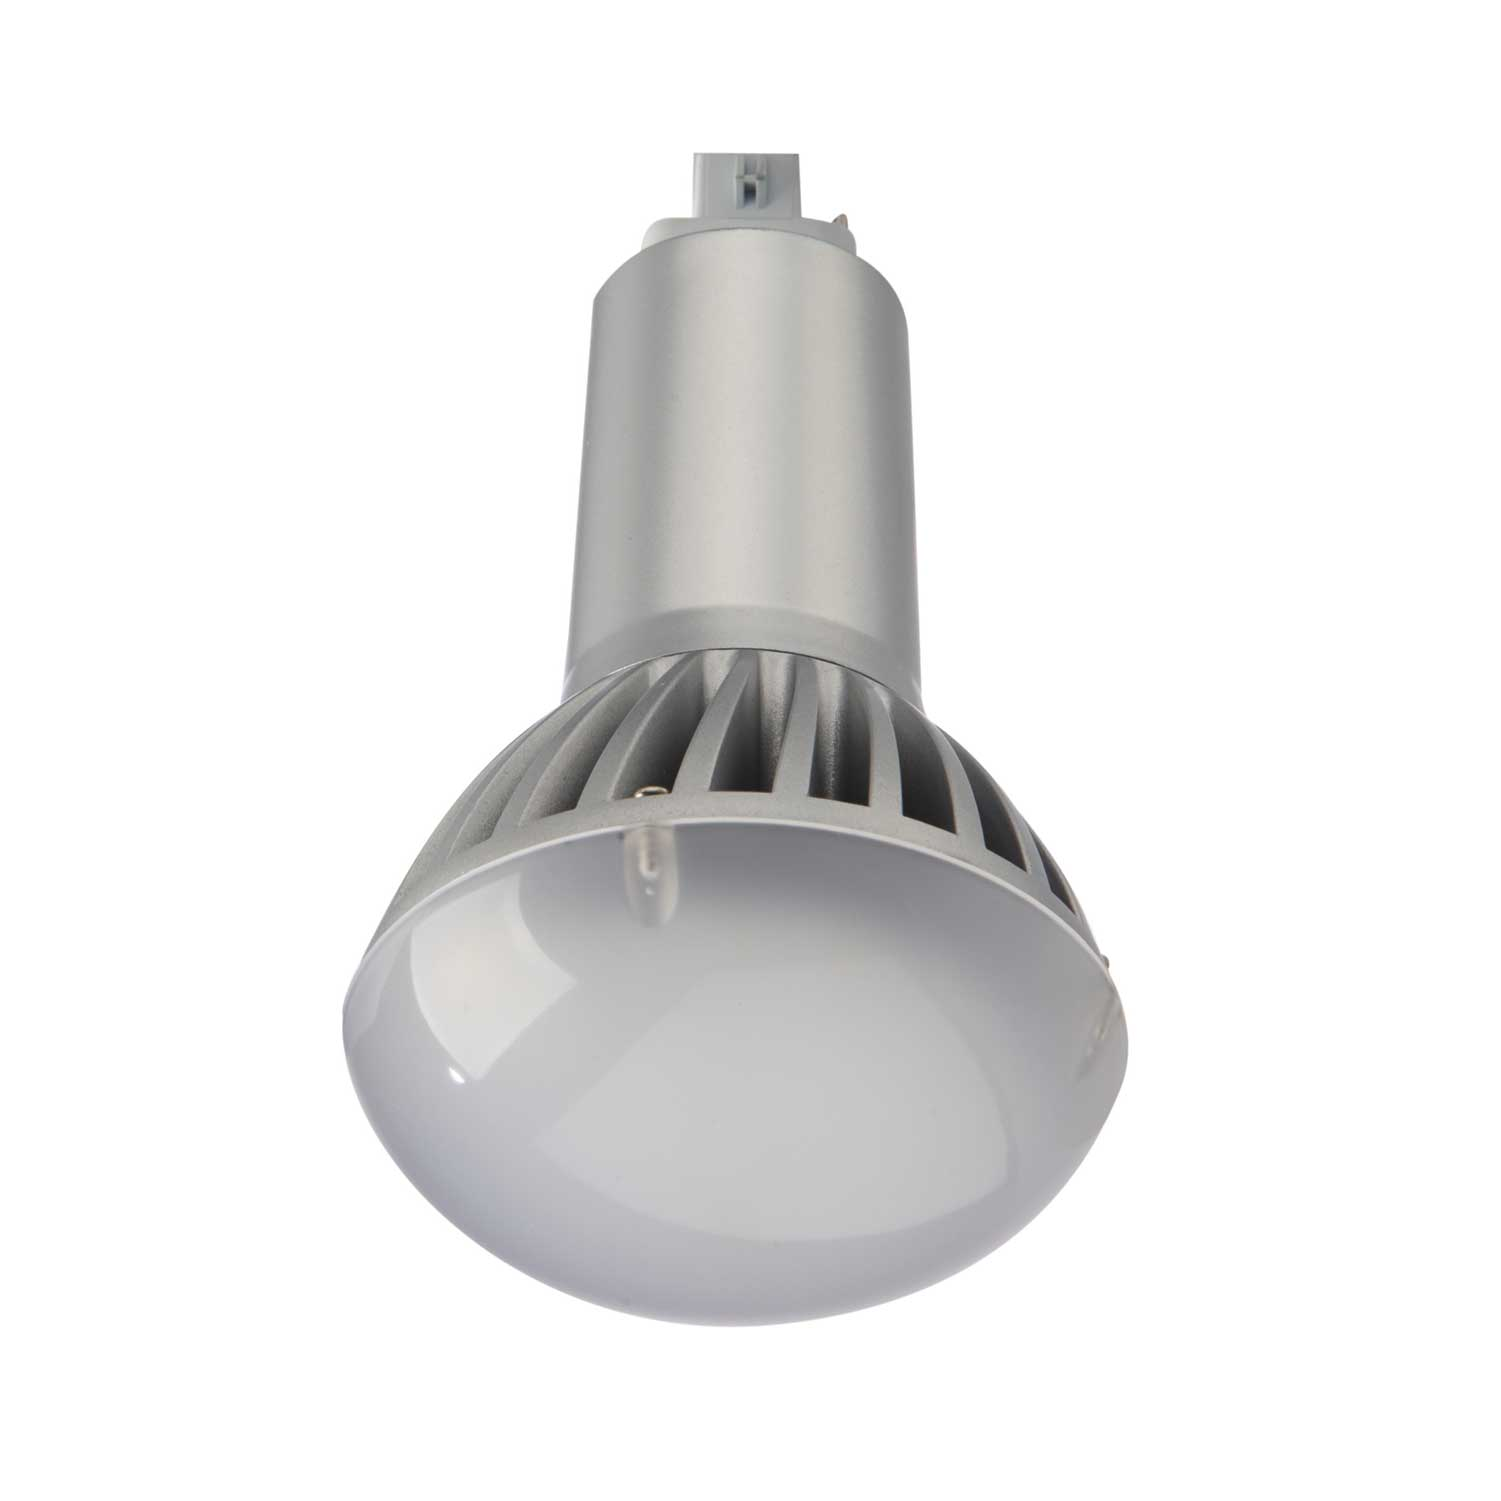 hight resolution of light efficient design led 7308 42a bulb pl led 10w g24q 4 pinvertical mounting great brands outlet